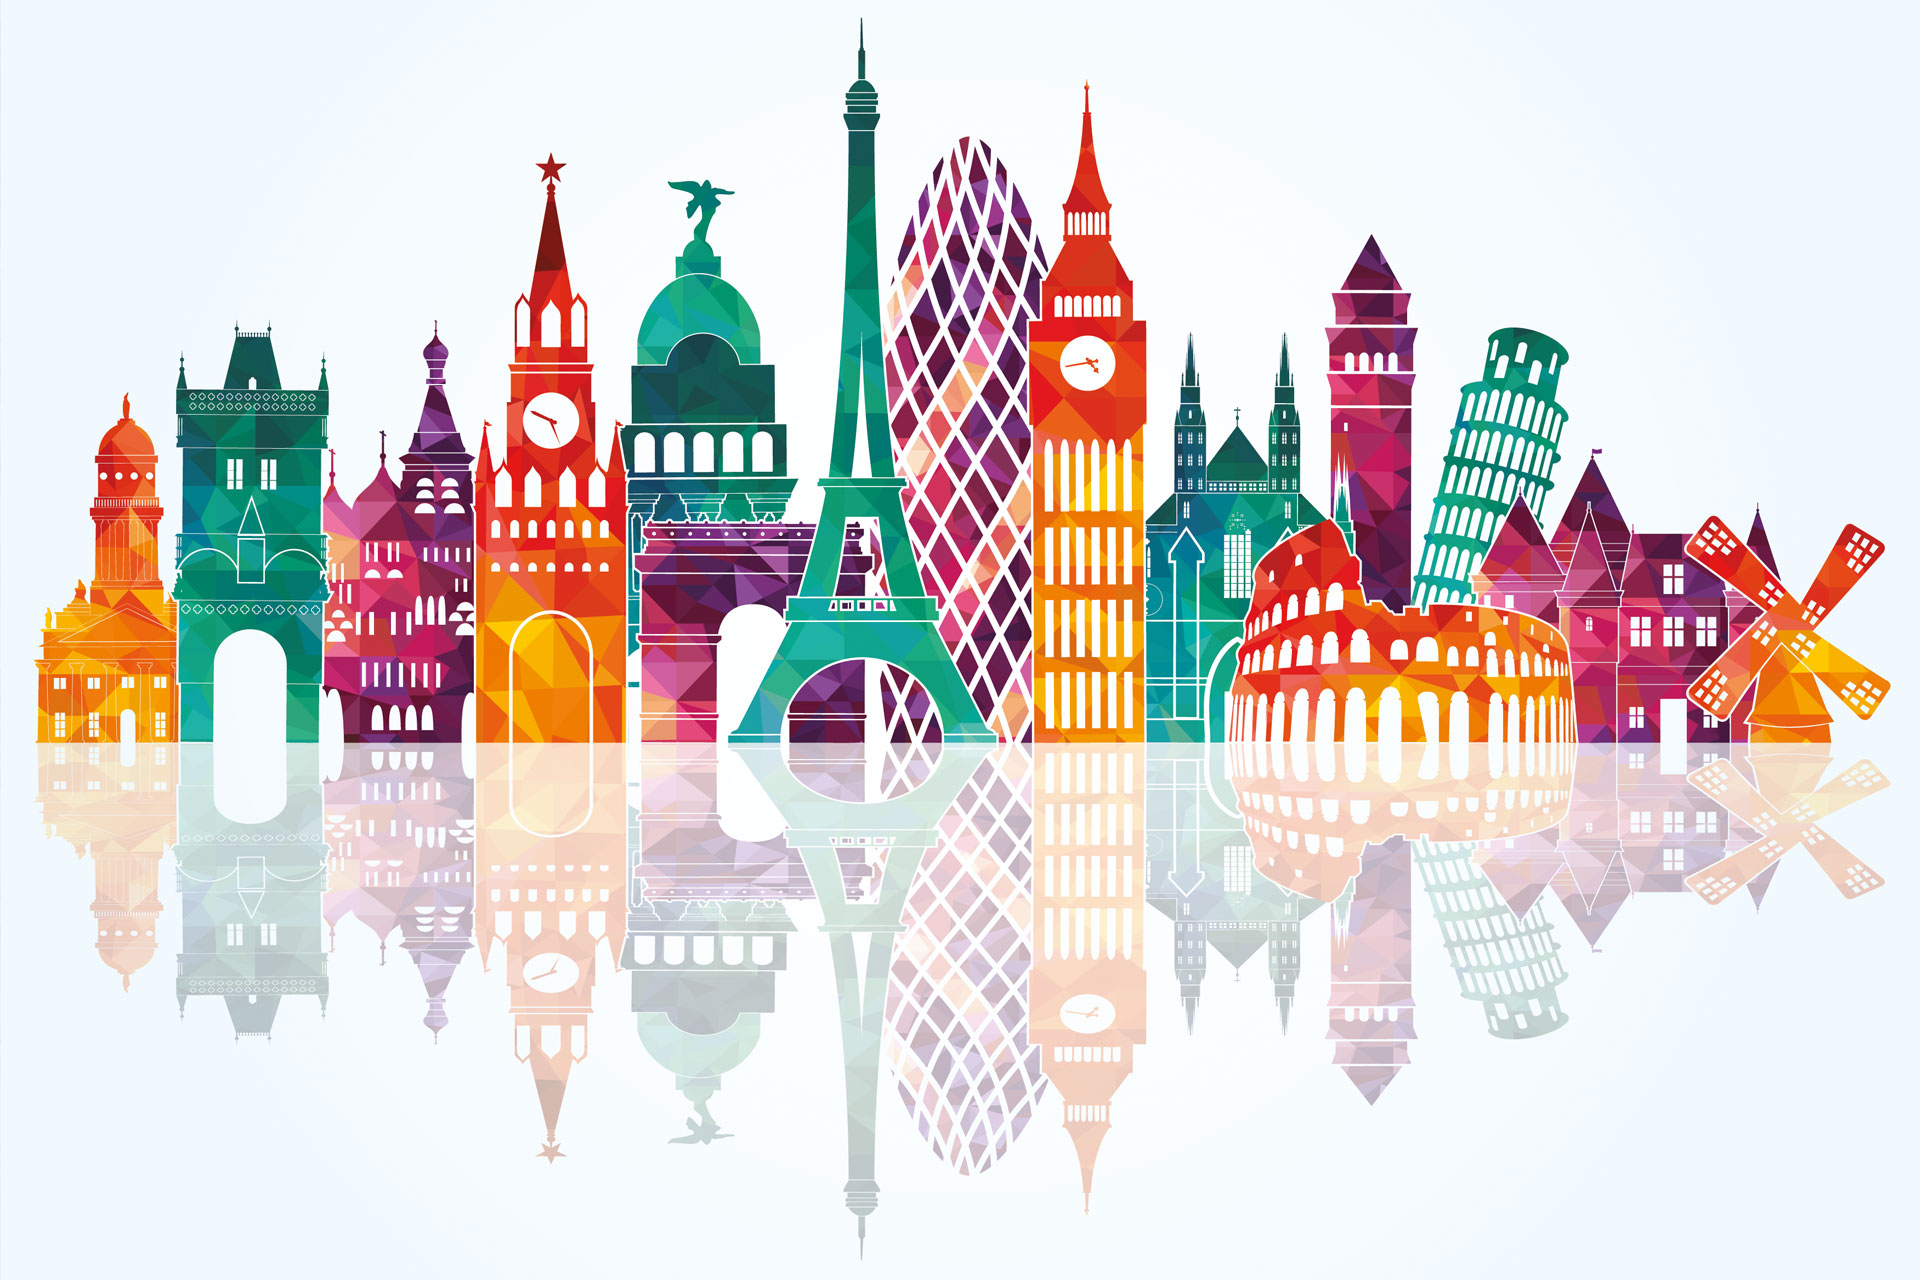 Picture containing landmarks from across Europe